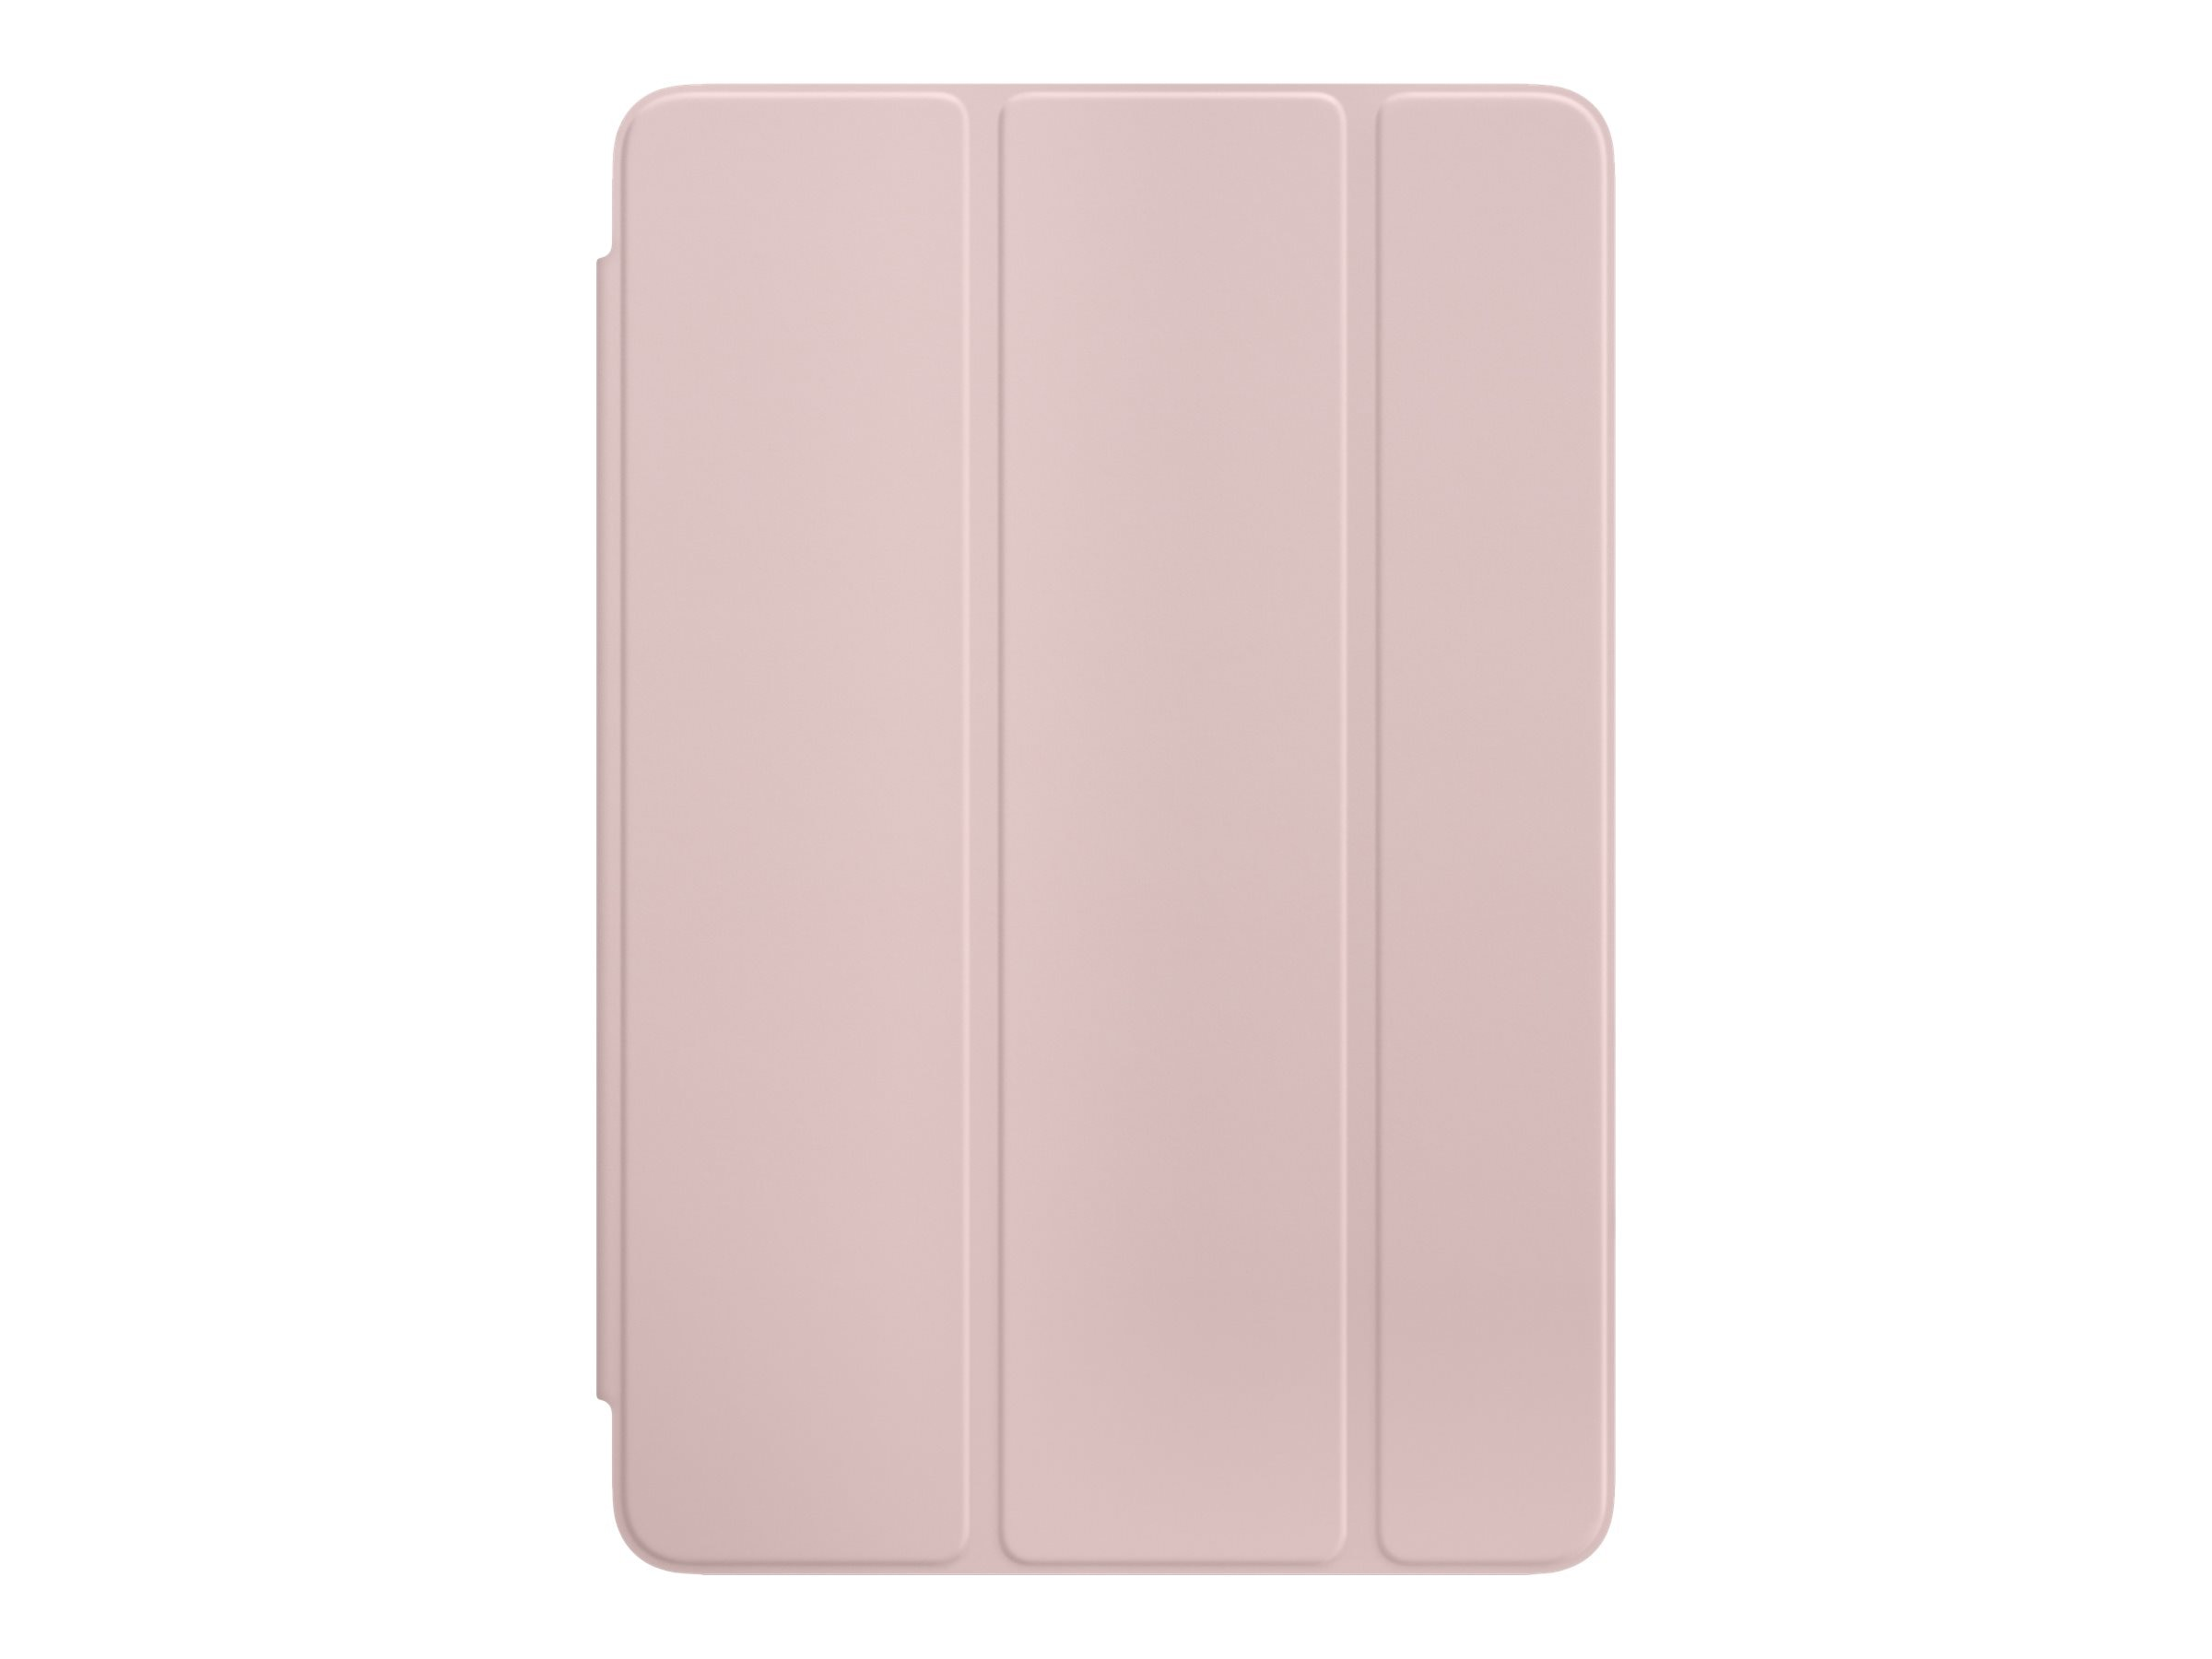 Apple Smart Cover for iPad mini 4, Pink Sand, MNN32ZM/A